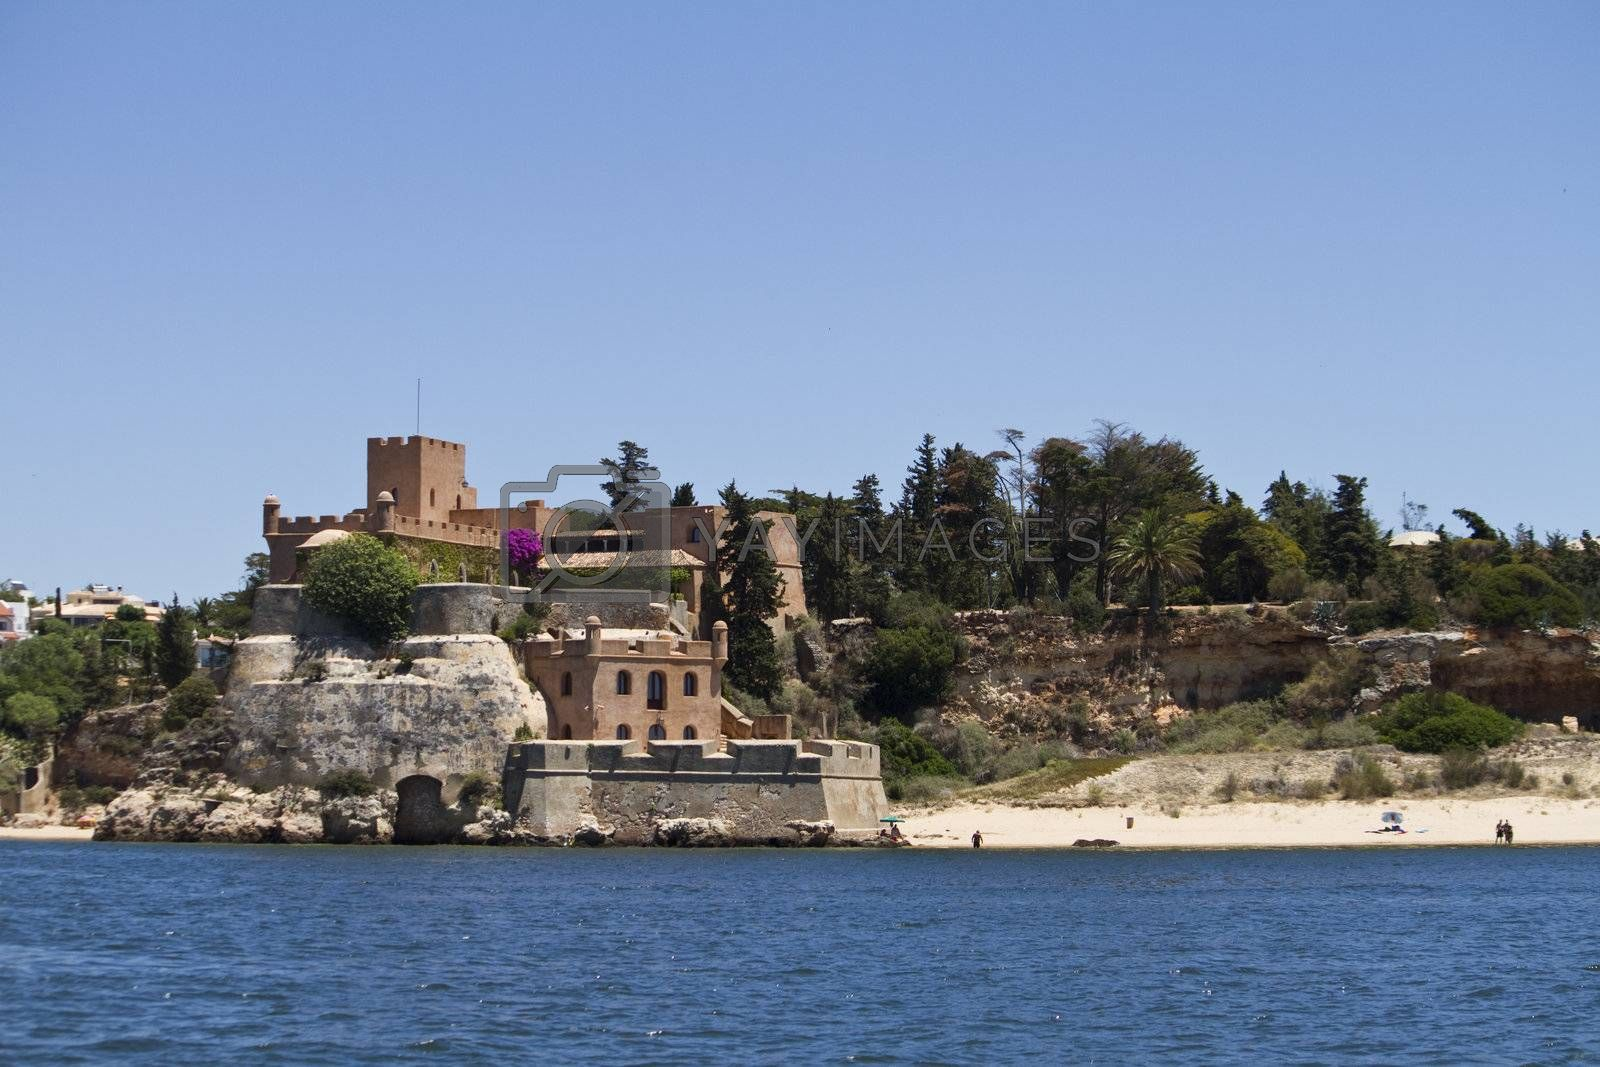 View of the beautiful castle in the Ferragudo city on the Algarve, Portugal.